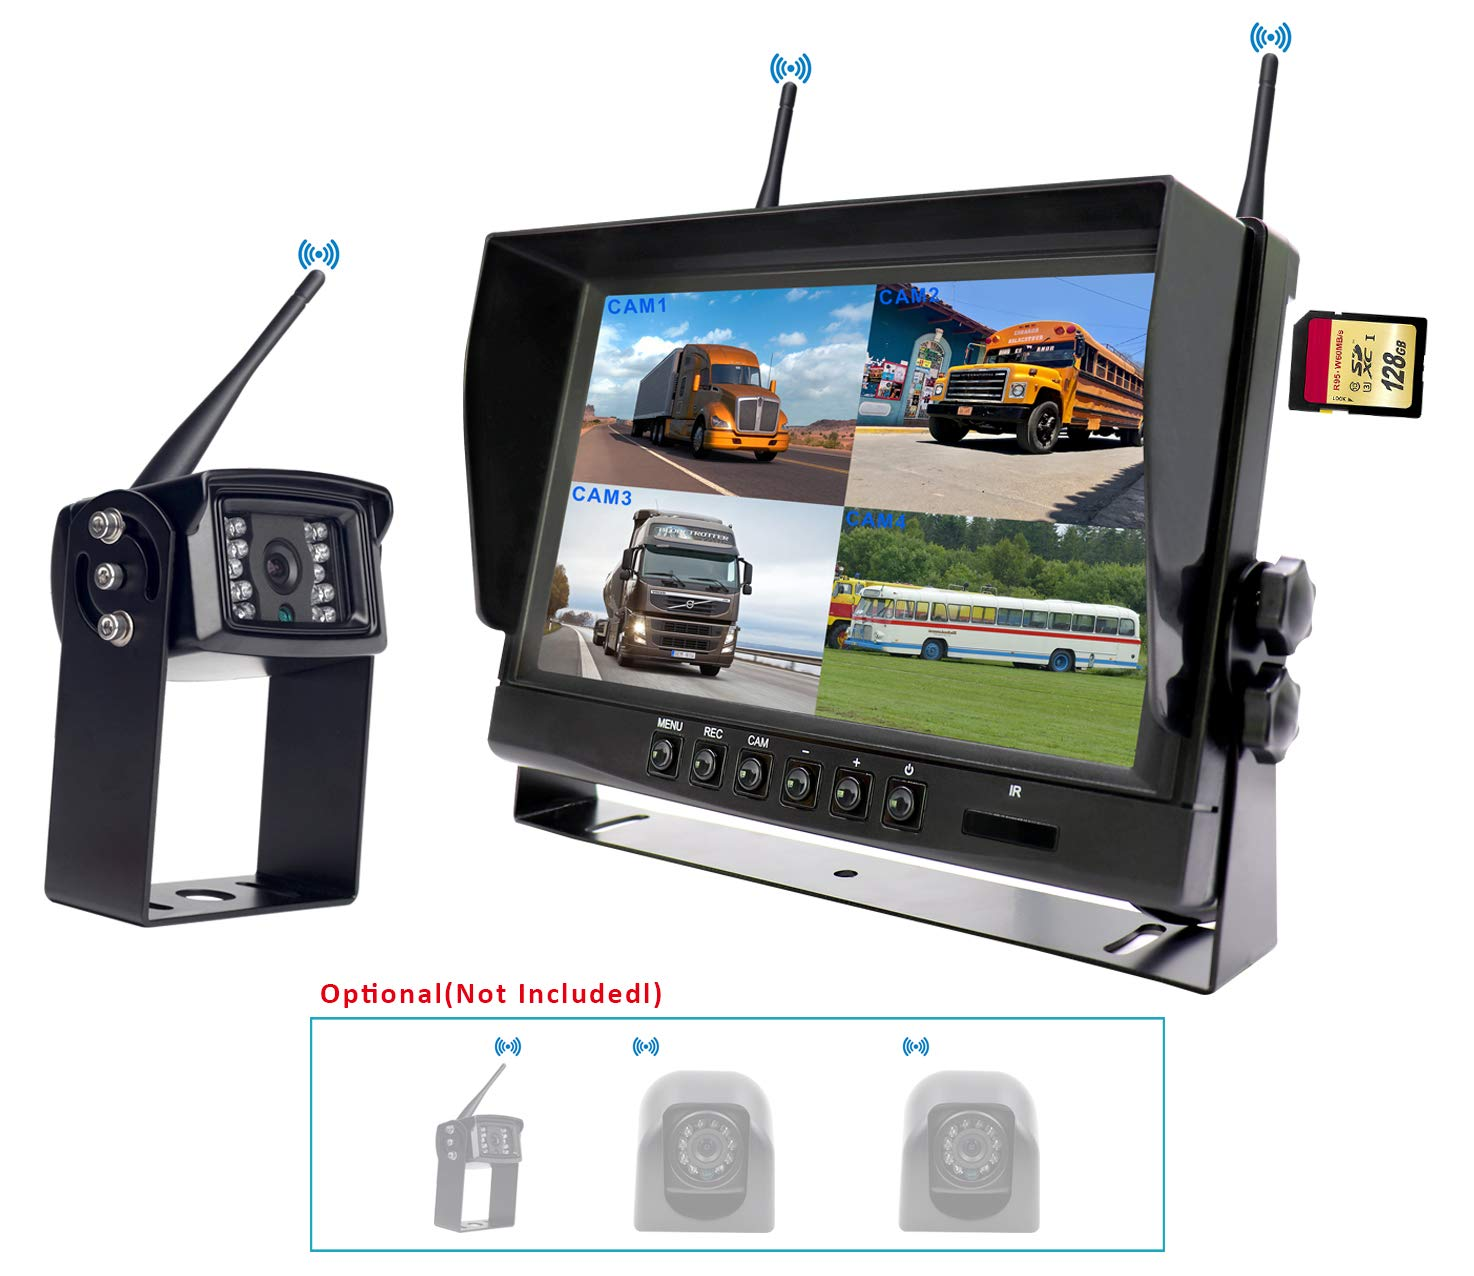 """CAMONS Digital Wireless Backup Camera for RV Trailer Backup Camera with Monitor 120/°HD Night Vision IP68 Waterproof Camera Rear//Side//Front with Mic Shenzhen Topwell Electronics Co Ltd T-DW-7150R 7/"""" Quad Split No Flicker, Built-in DVR Trucks"""